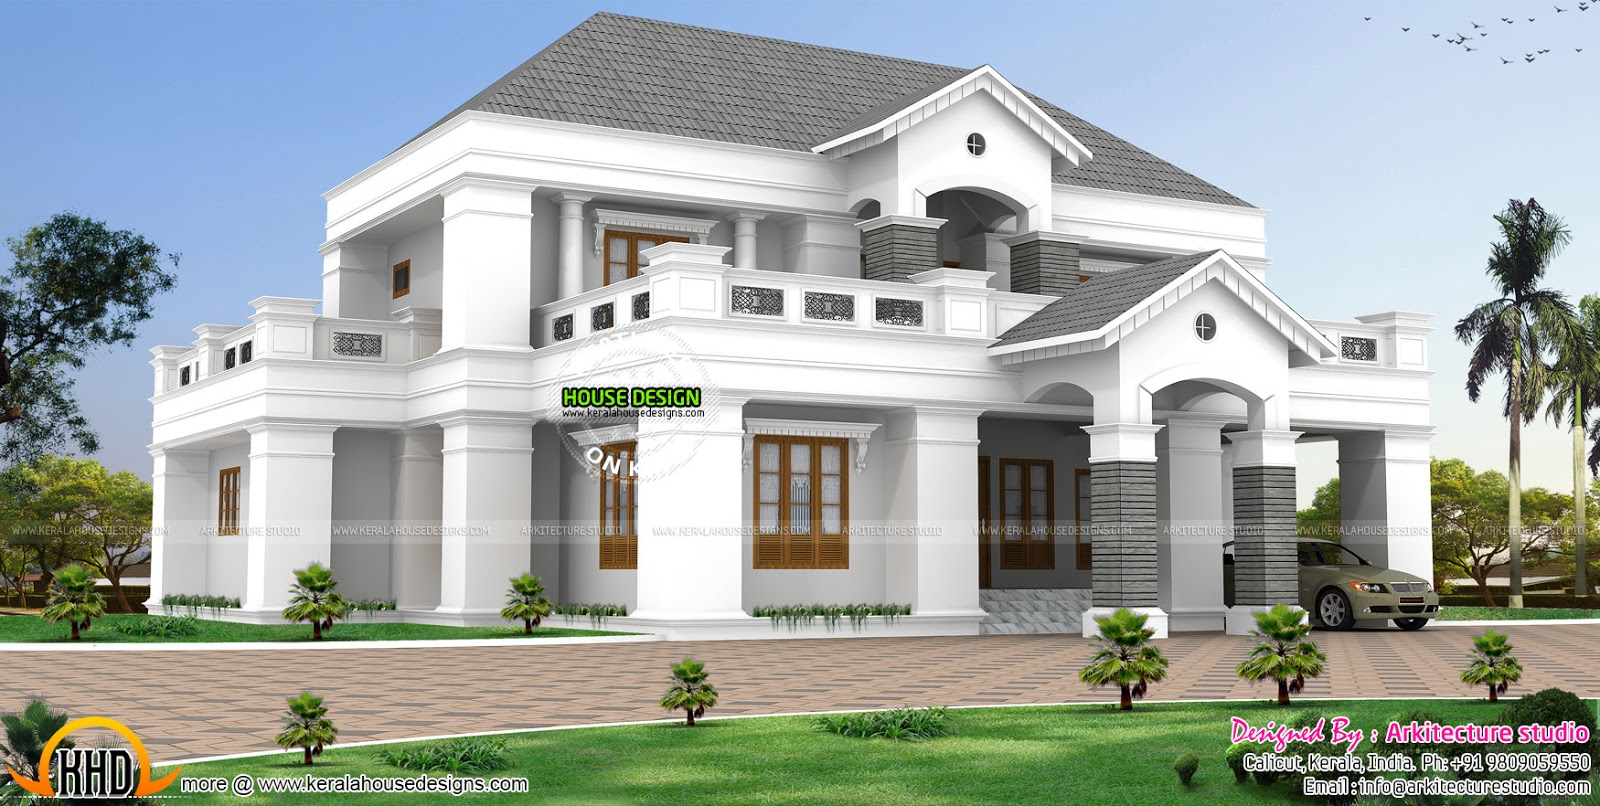 Luxurious pillar type home design kerala home design and for House arch design photos